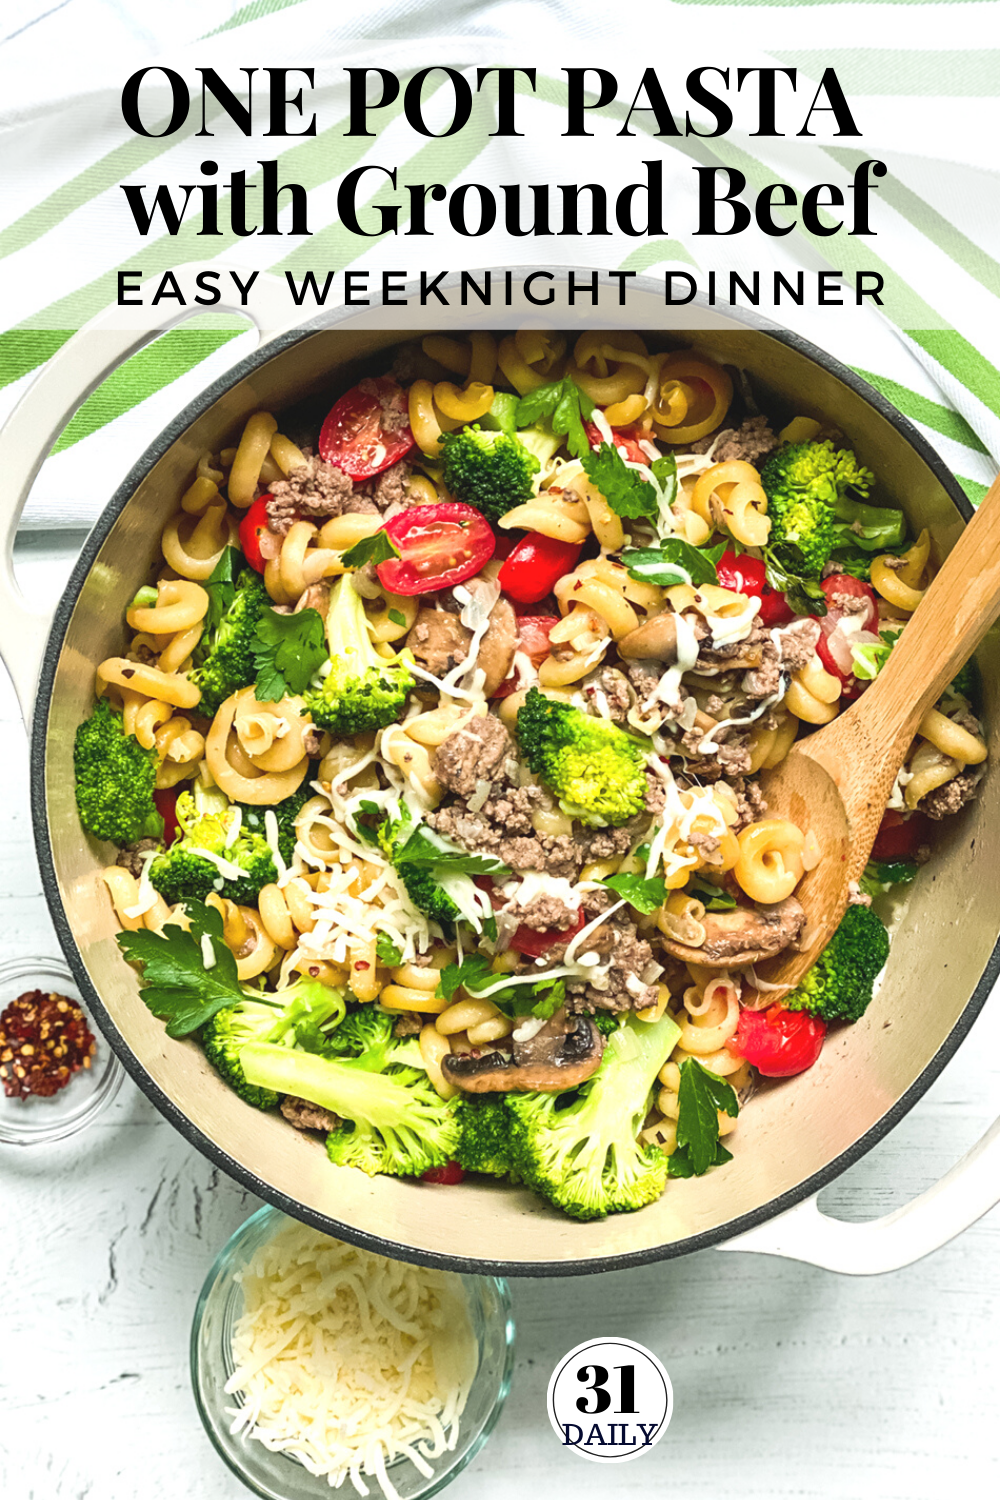 Easy One Pot Pasta With Ground Beef And Broccoli Recipe In 2020 One Pot Pasta Easy Pasta Recipes Weeknight Dinner Pasta